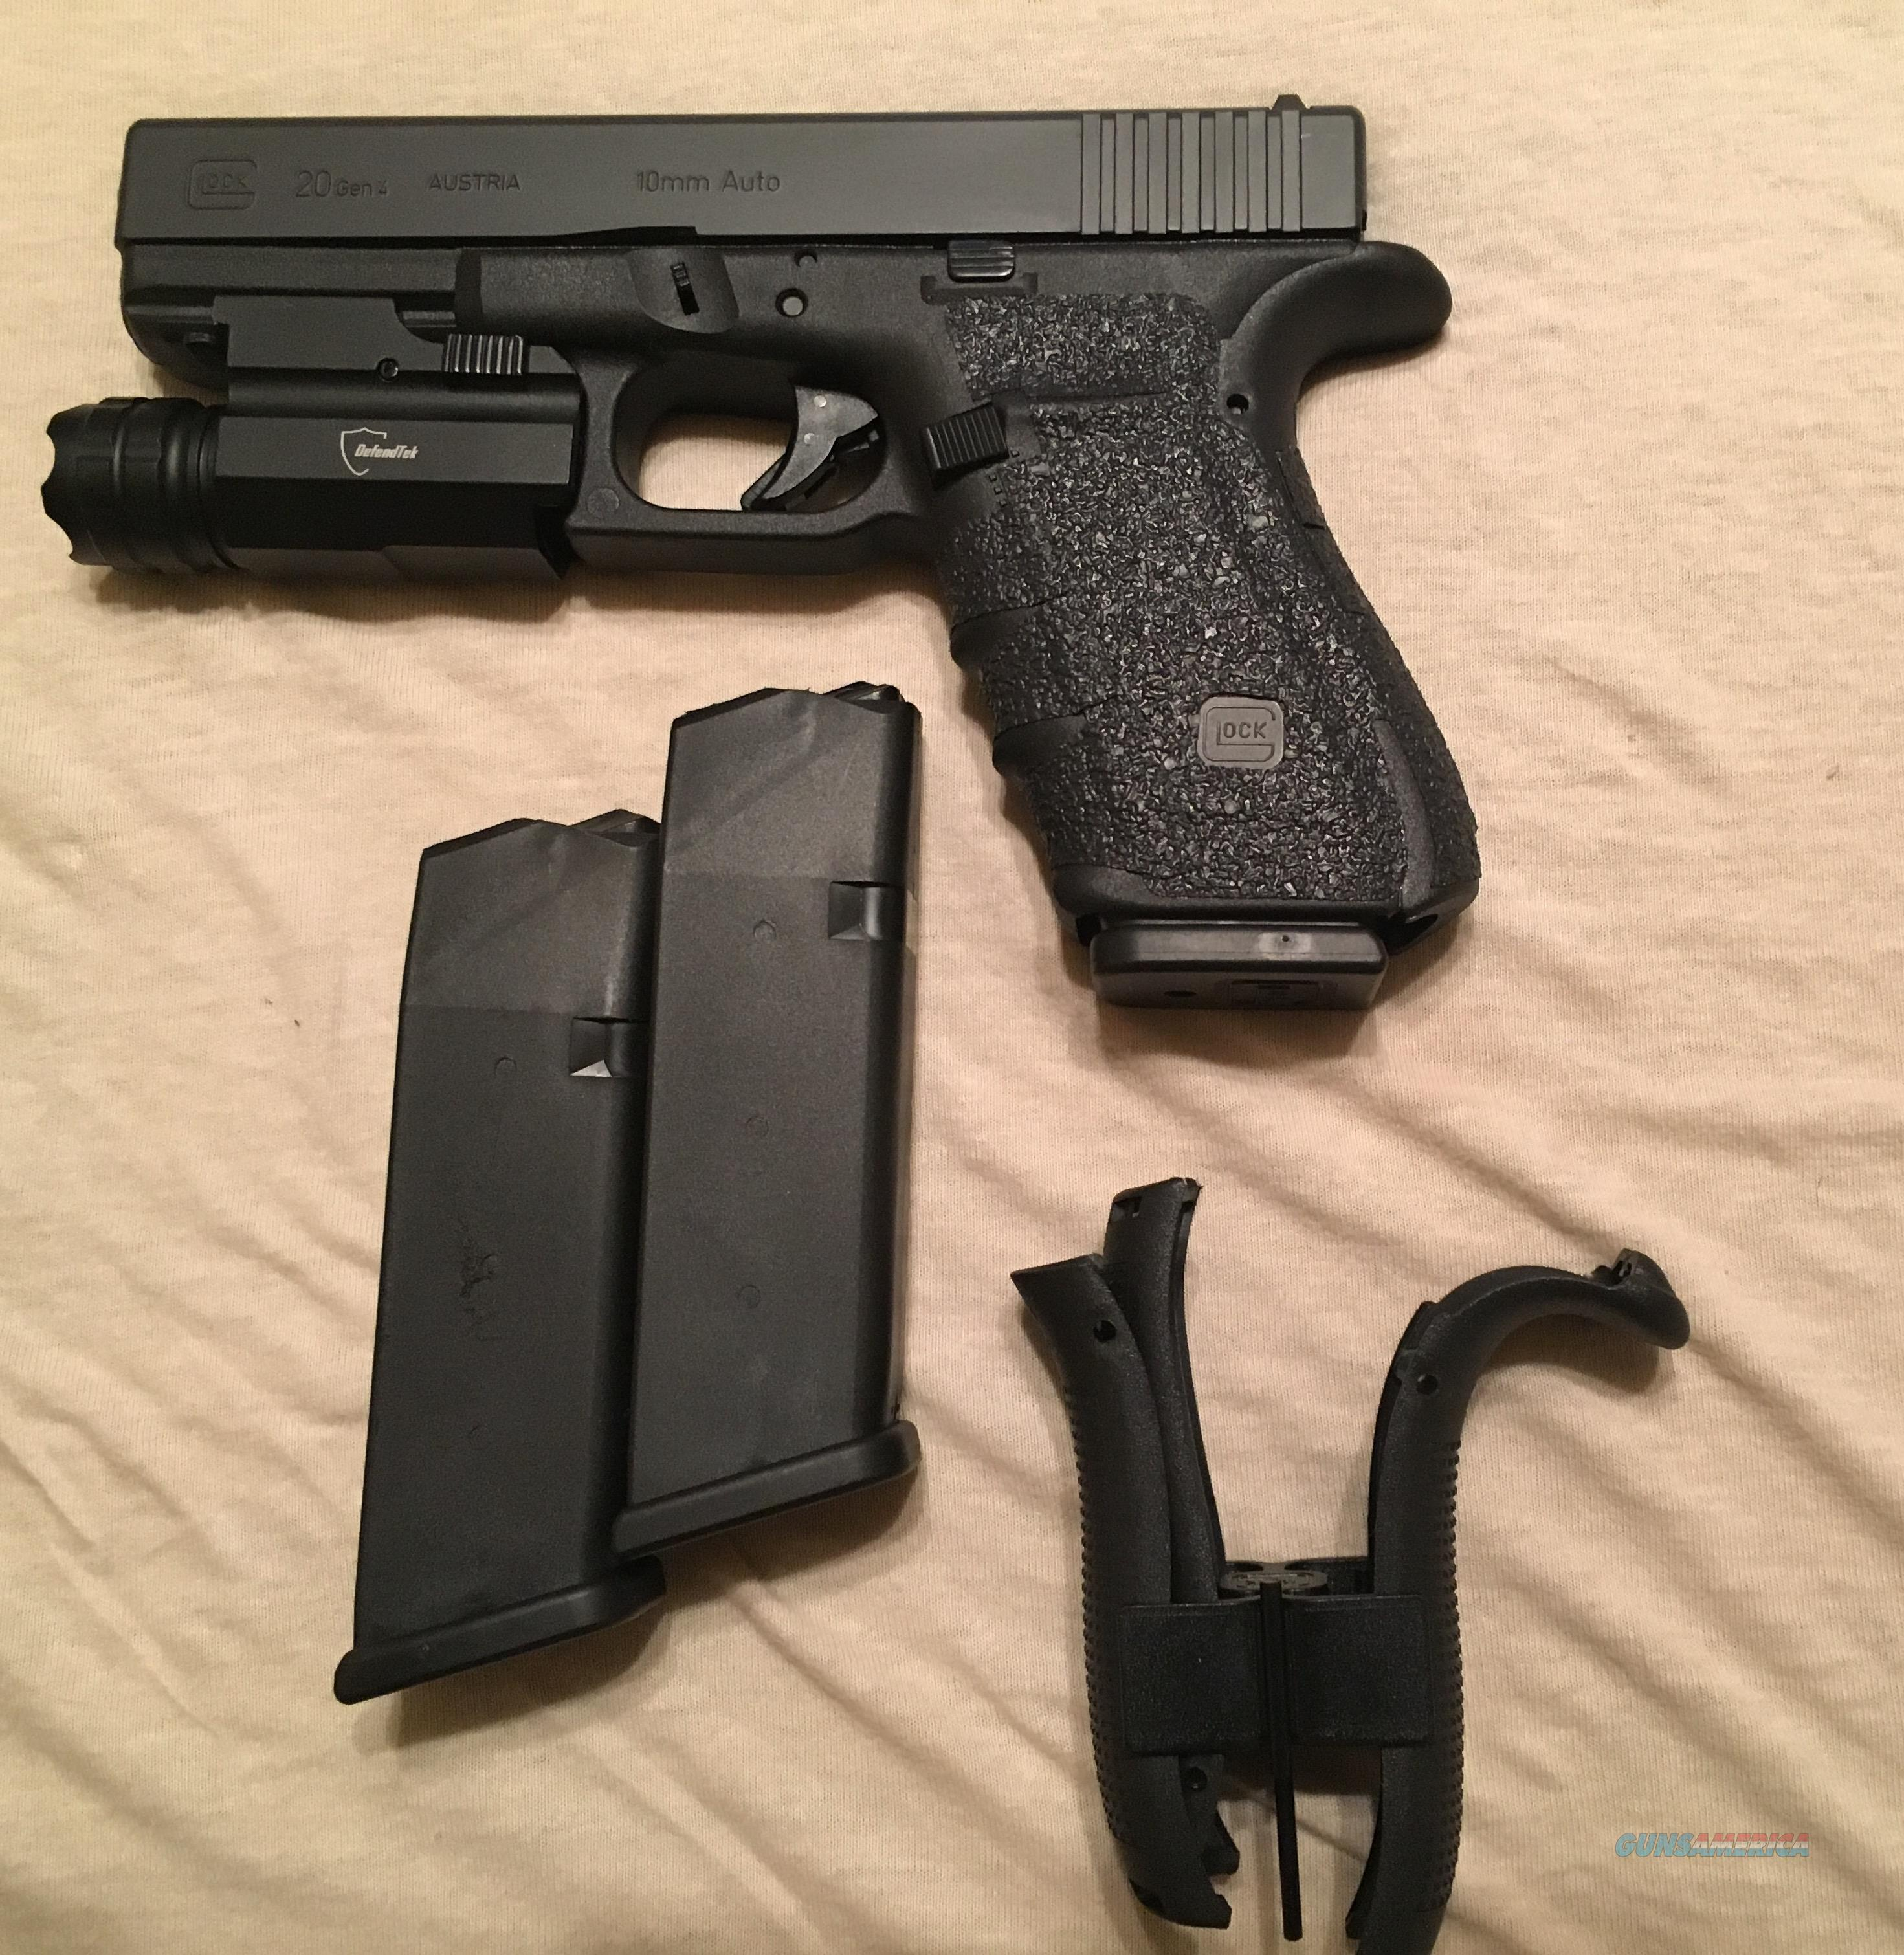 Glock 20 gen 4 10mm 3 magazines,tactical light, talon grip, additional  backstraps, and case